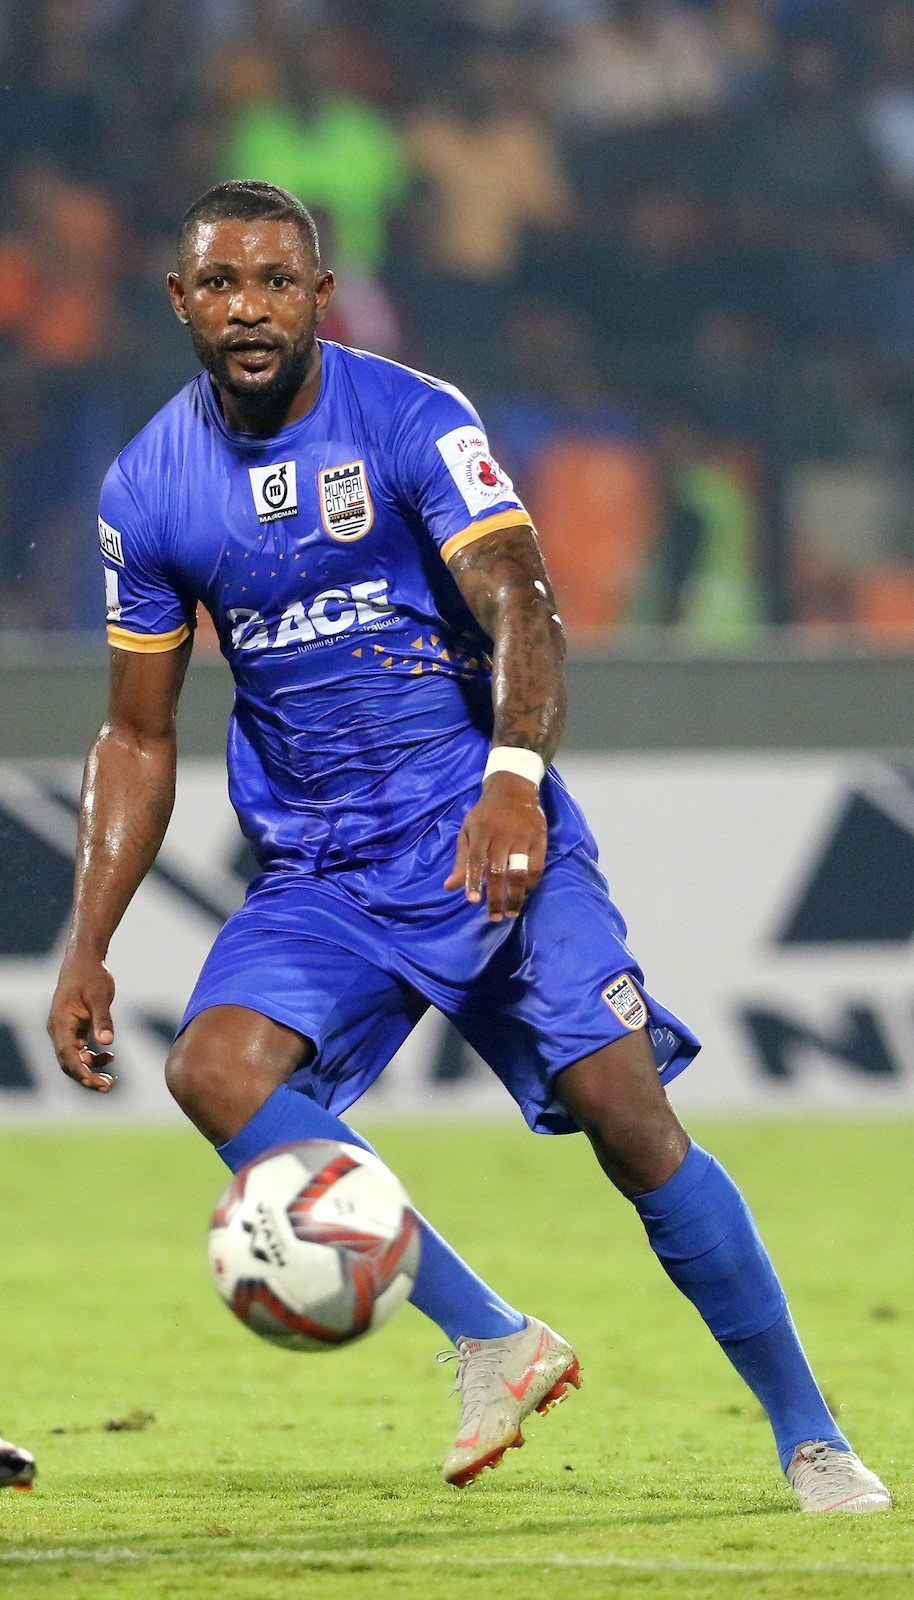 Hero ISL Preview: Mumbai City FC visit The Gaurs in a tough away game